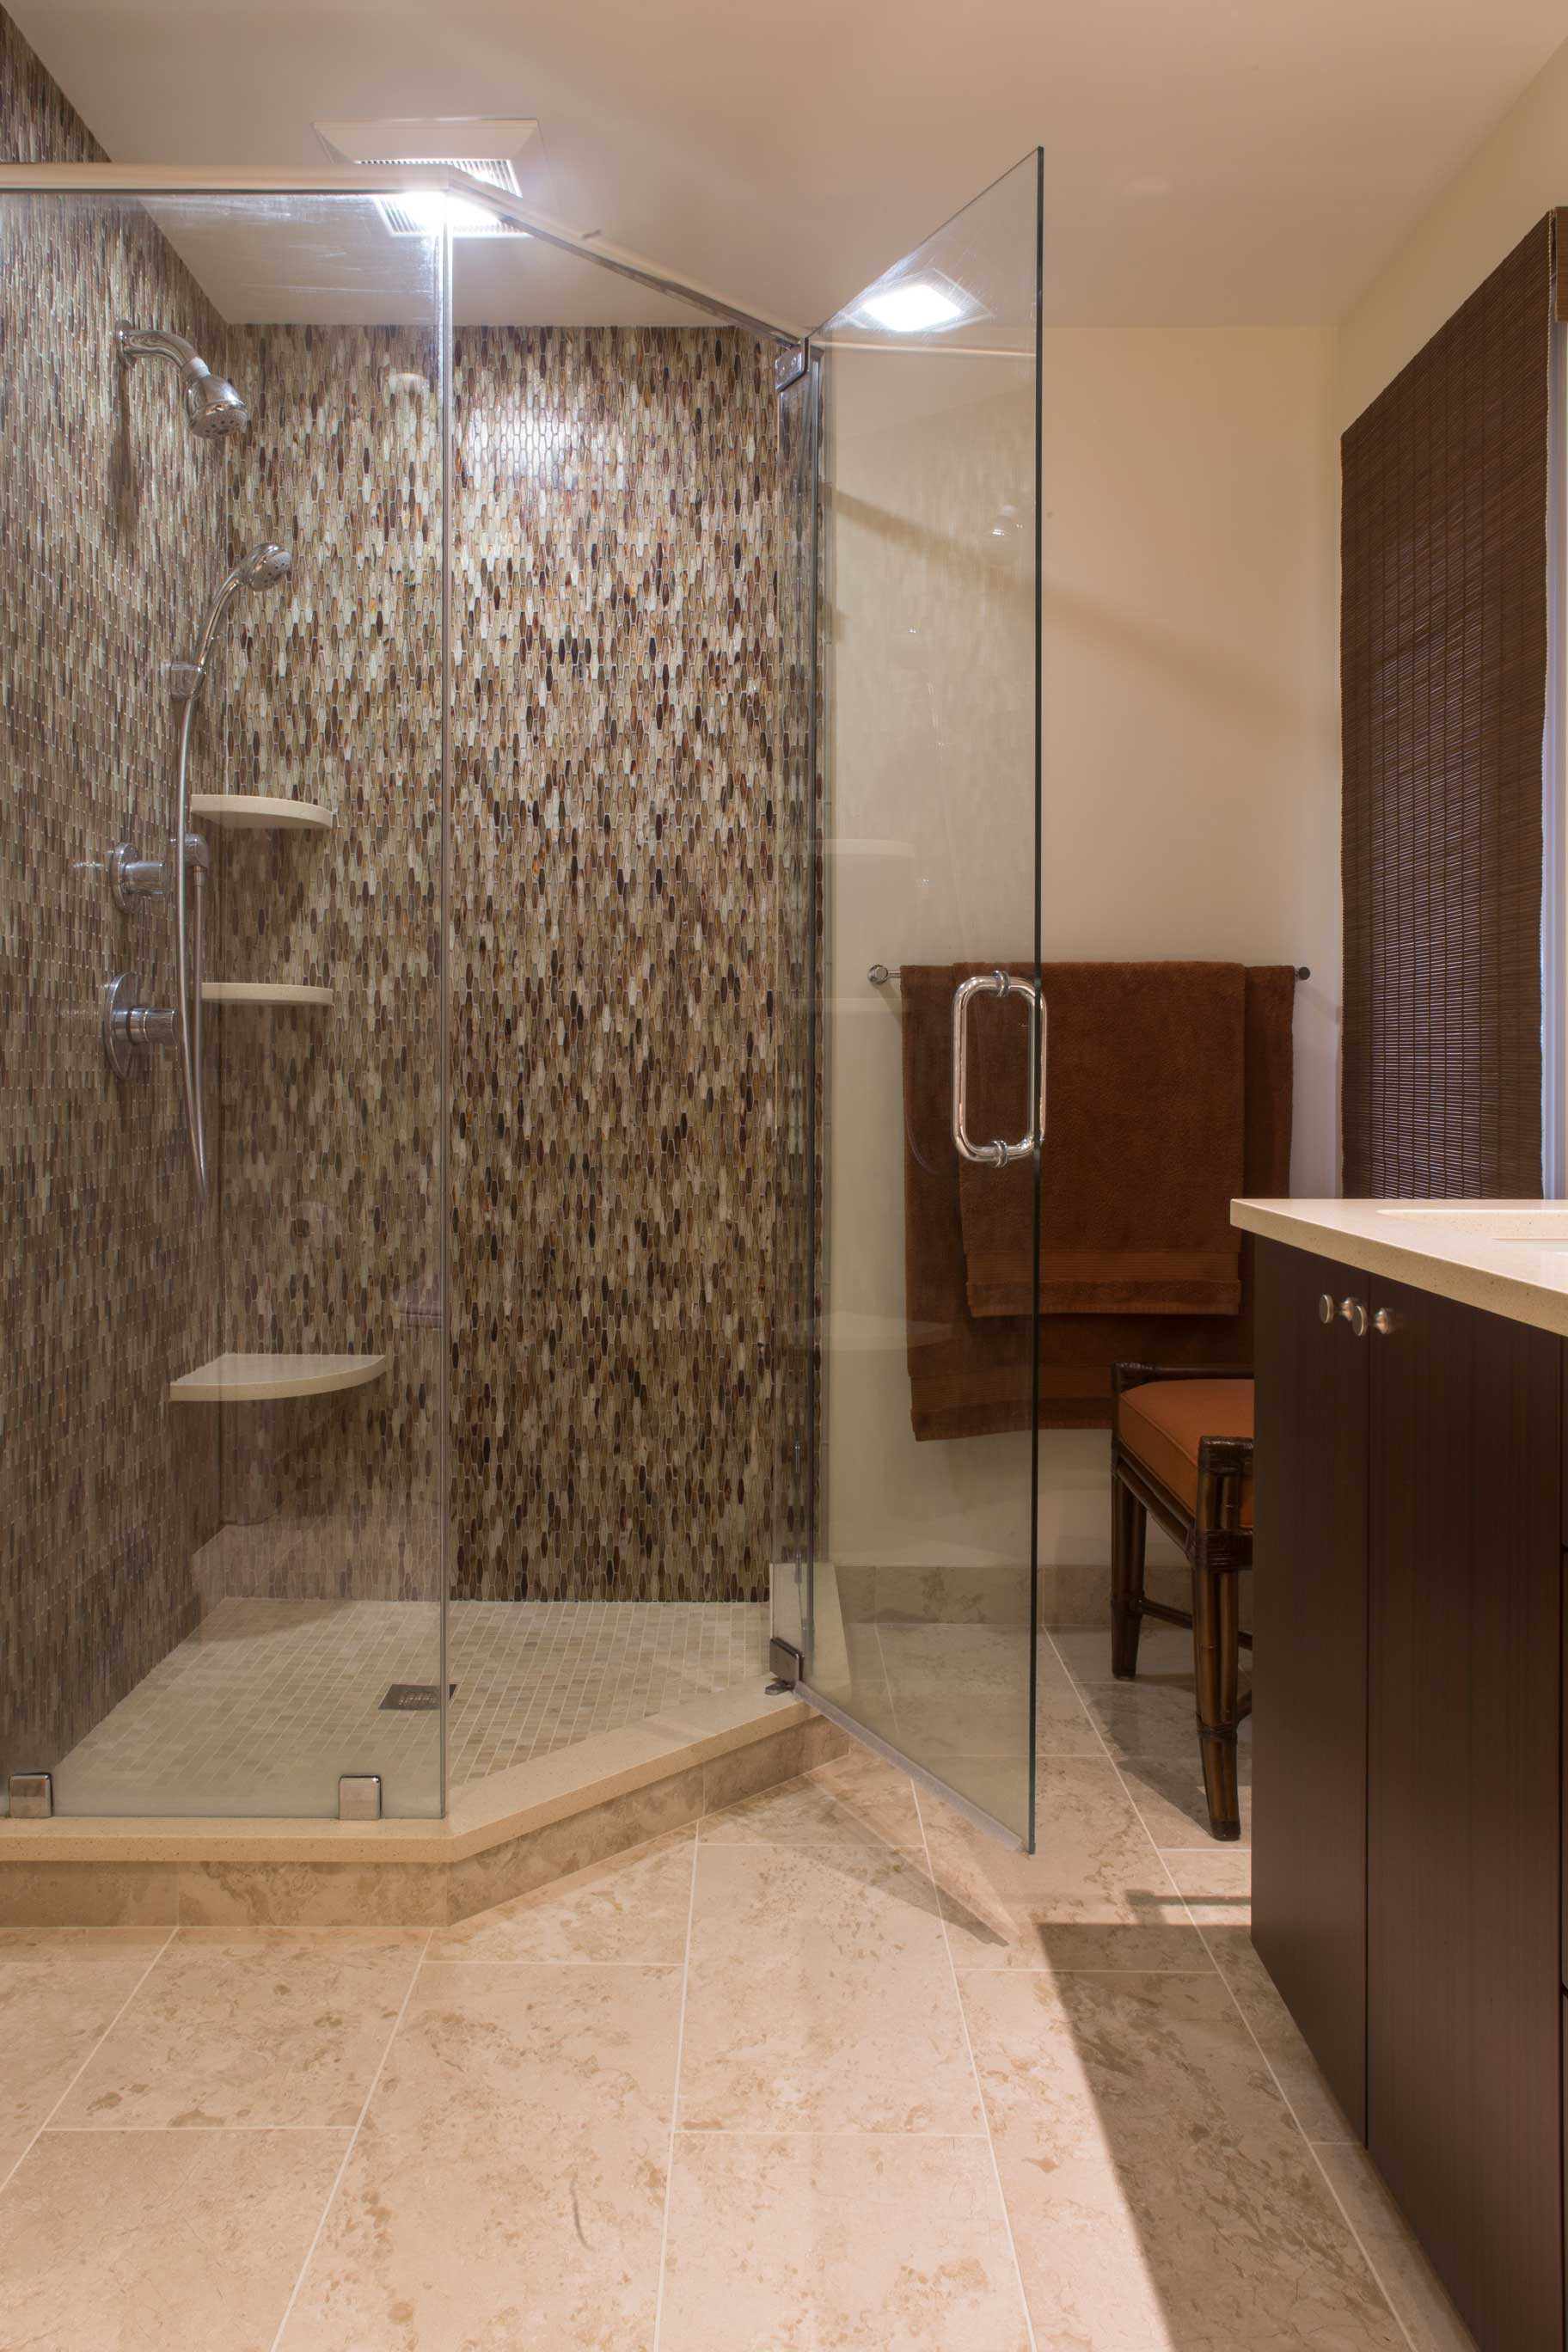 Tile Waterfall in Natural Elements Bathroom Design